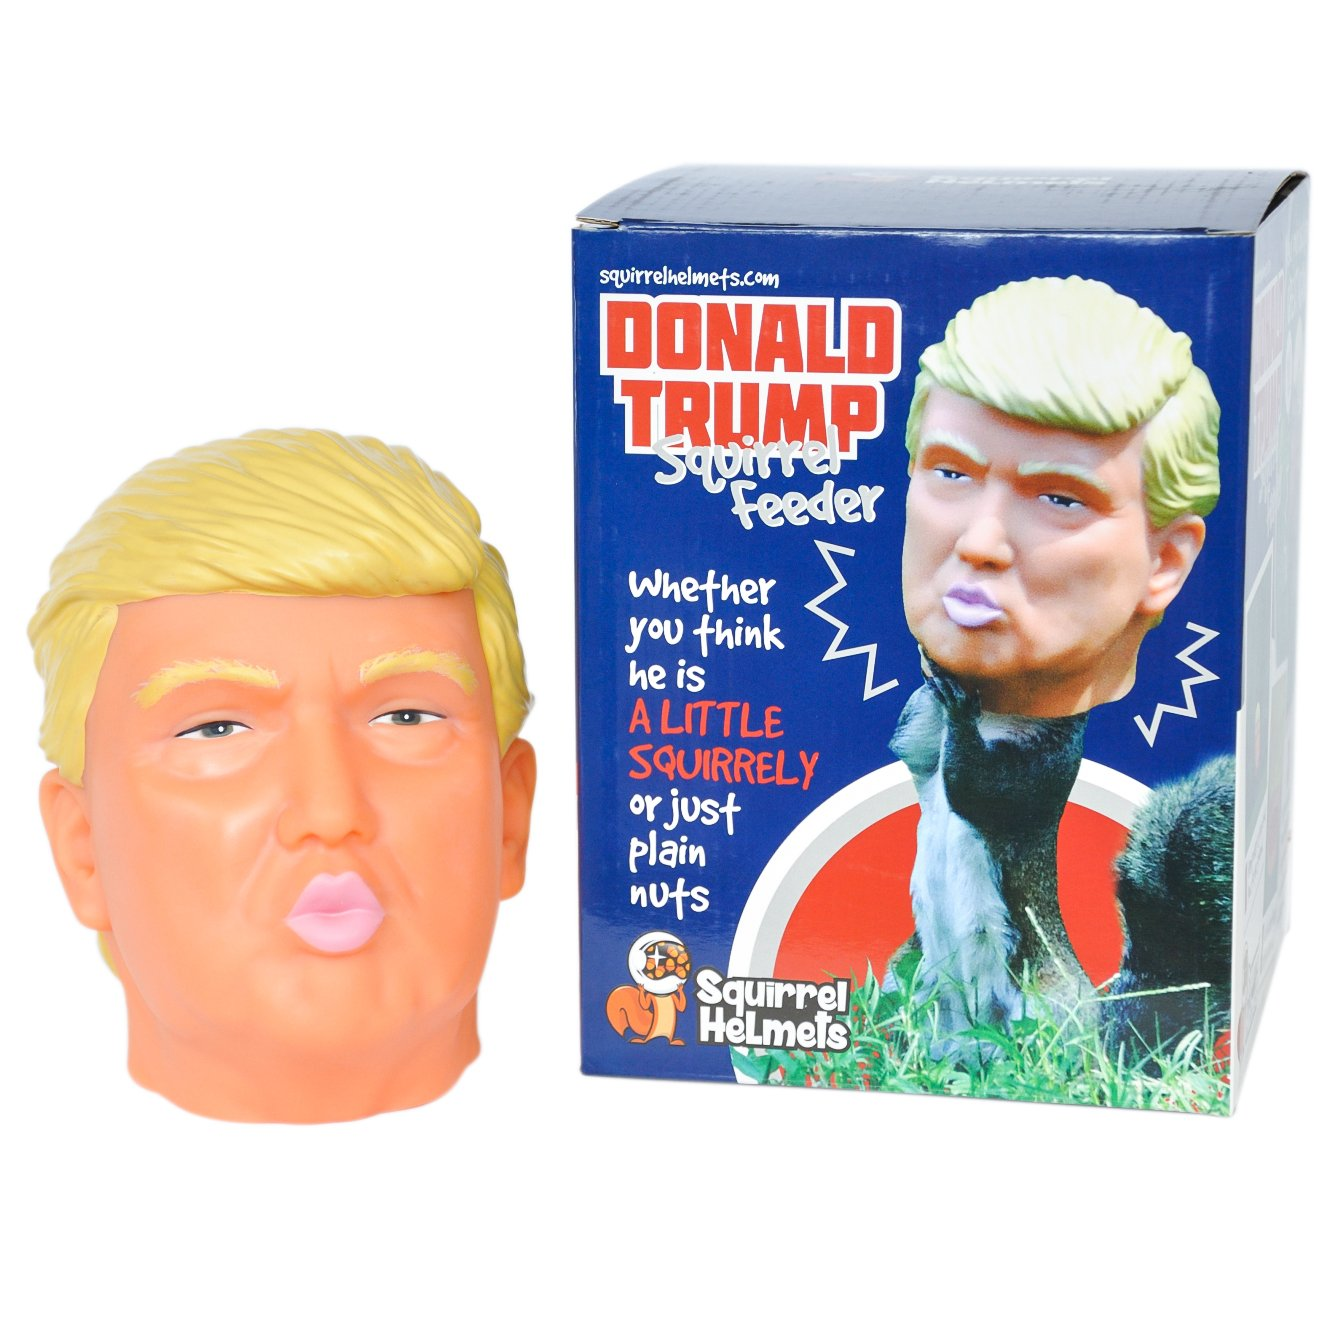 Donald Trump Squirrel Feeder, Keep Squirrels Away from the Bird Feeder and Entertaining You Instead by Squirrel Helmets